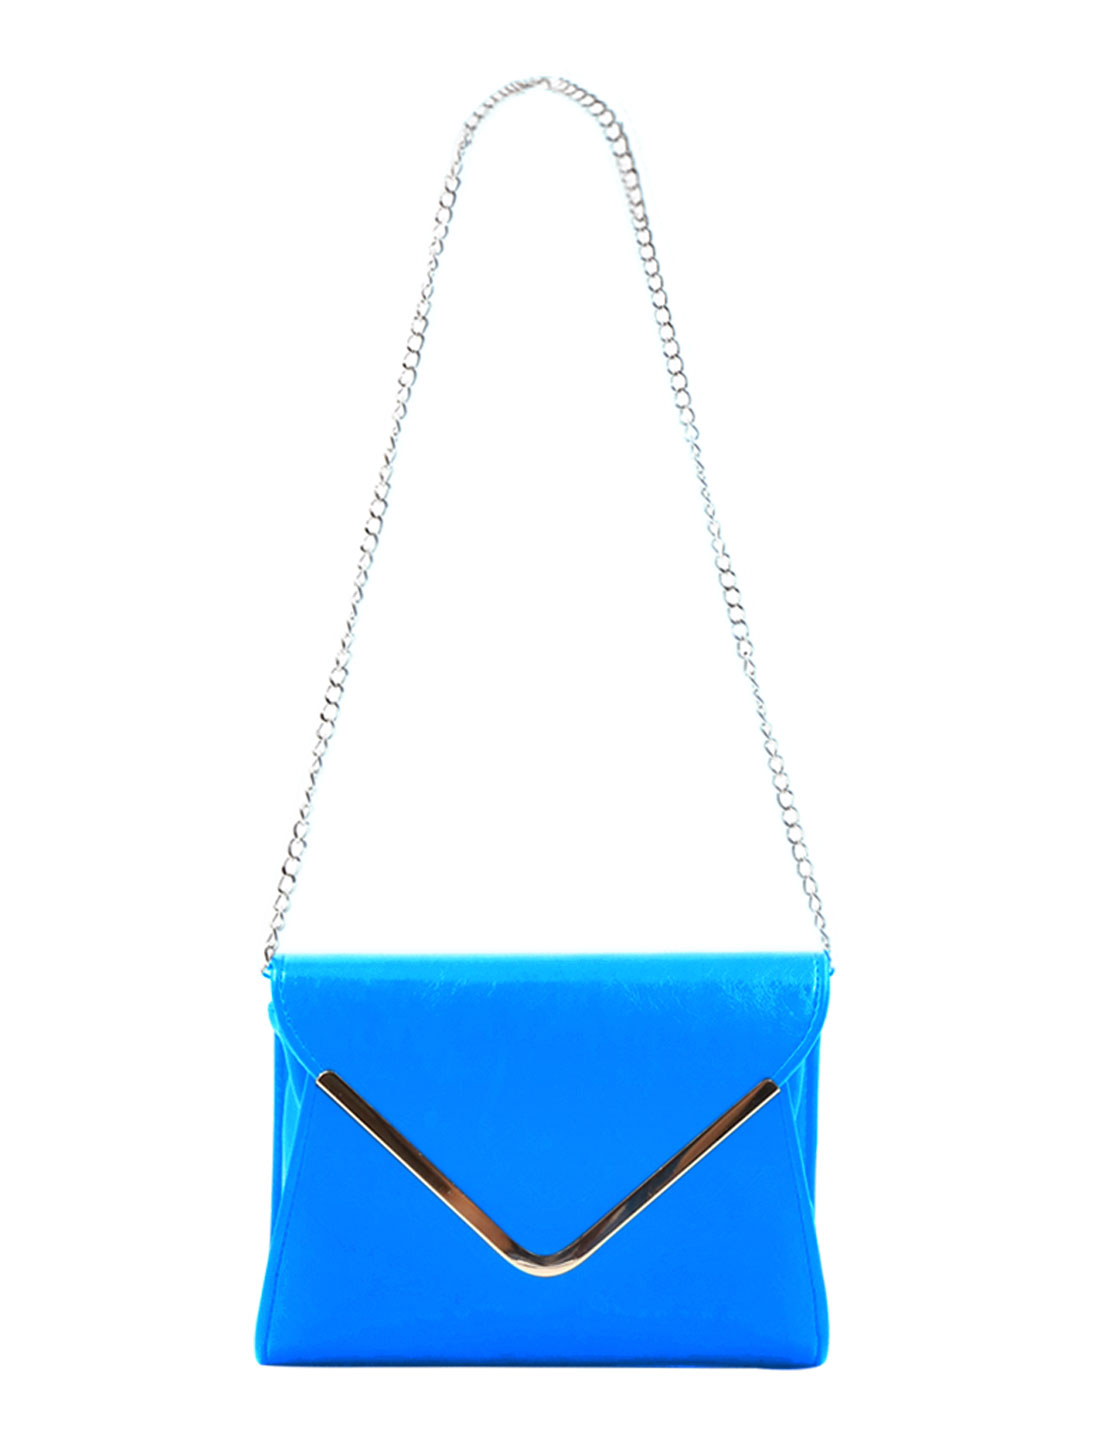 Lady Metal Capped Edge PU Leahter Mini Crossbody Shoulder Bag Turquoise